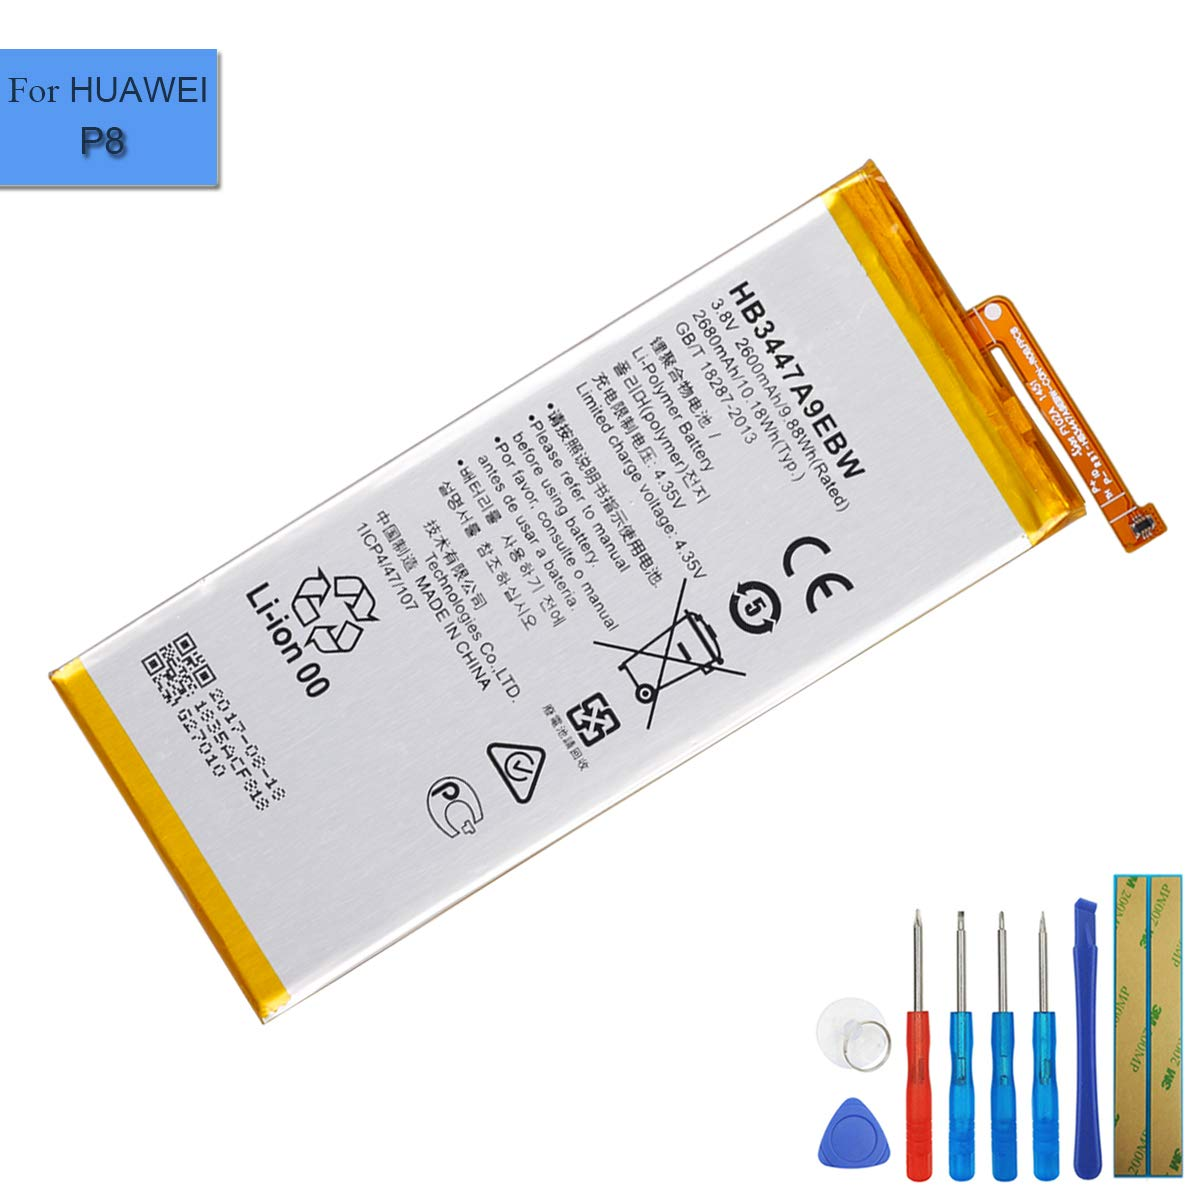 Li-Polymer Replacement Battery HB3447A9EBW Compatible with Huawei P8 GRA-UL00 Ascend P8 GRA-CL00 GRA-CL10 GRA-TL10 with Tools